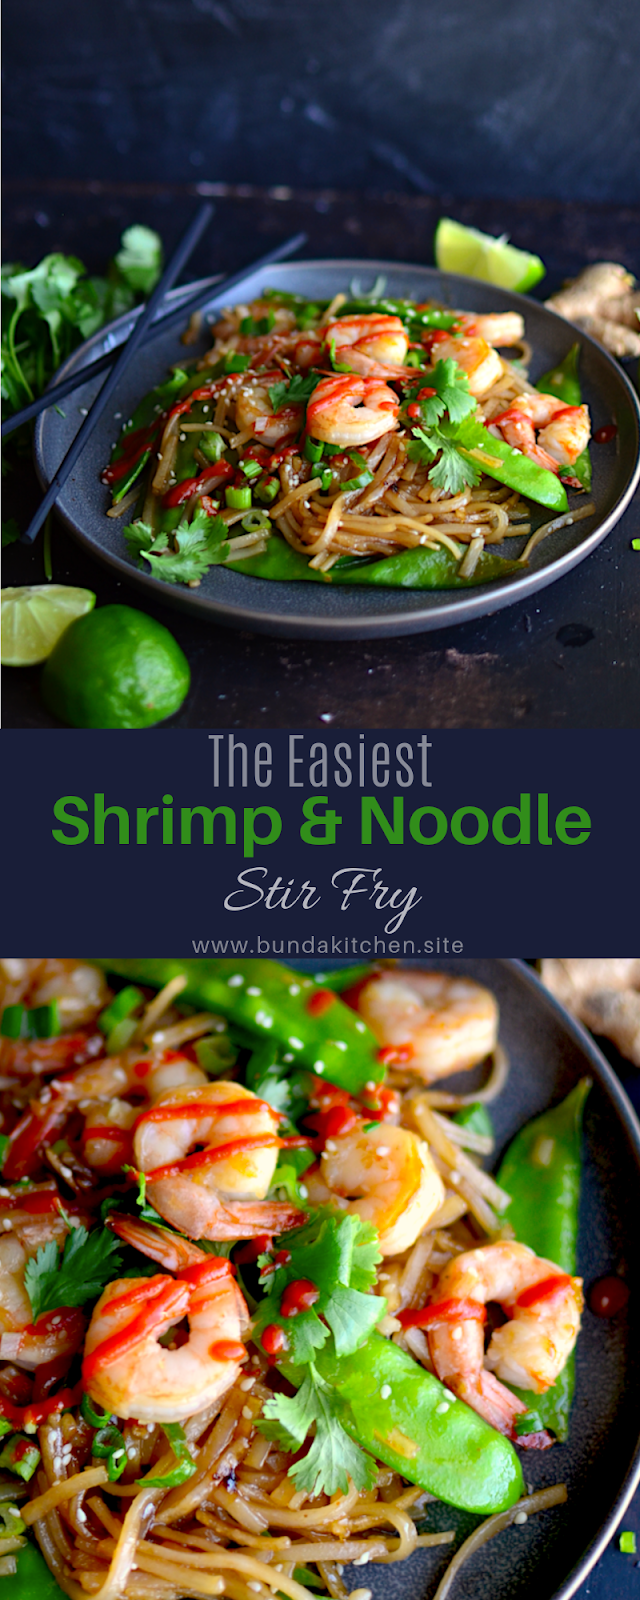 The Easiest Shrimp & Noodle Stir Fry {Naturally Gluten Free} - BUNDA KITCHEN #stirfryshrimp The Easiest Shrimp & Noodle Stir Fry {Naturally Gluten Free} - BUNDA KITCHEN #stirfryshrimp